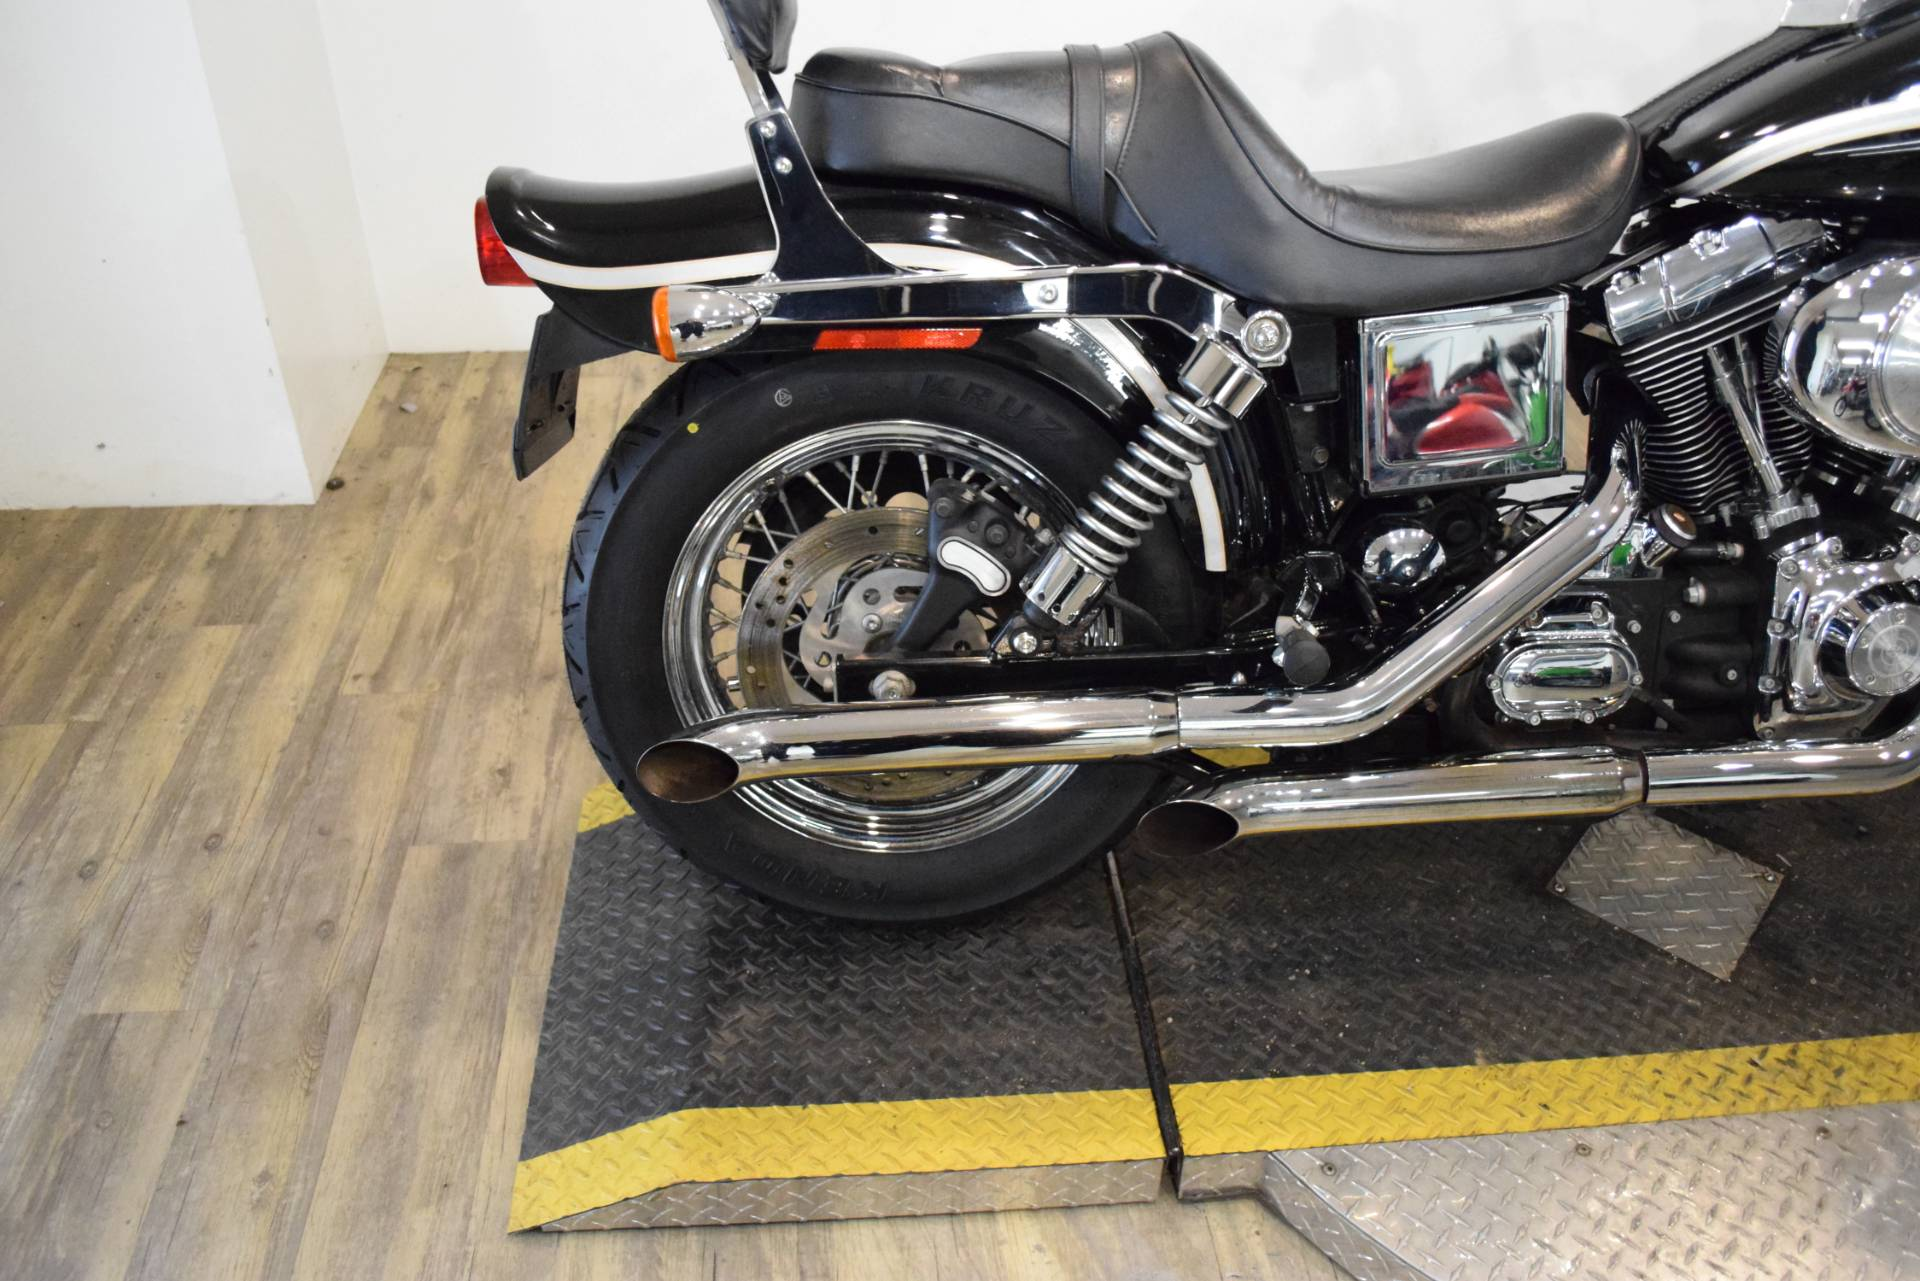 2003 Harley-Davidson FXDWG Dyna Wide Glide® in Wauconda, Illinois - Photo 8